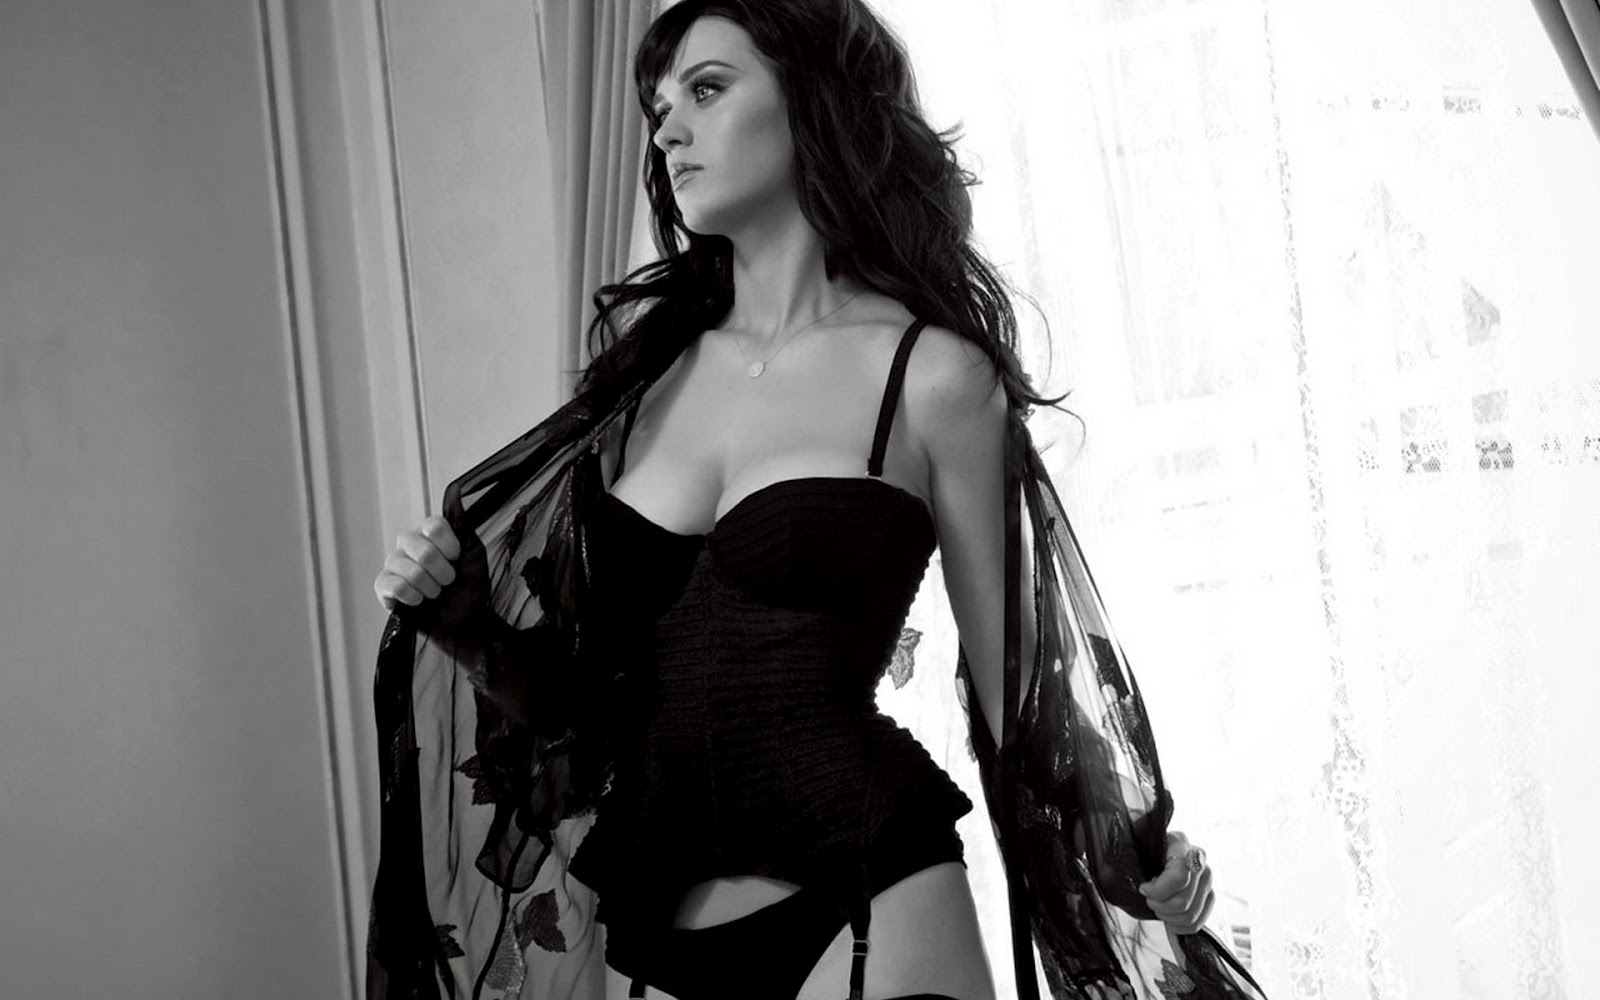 All Wallpapers: Katy Perry HD Hot Wallpapers in 2012